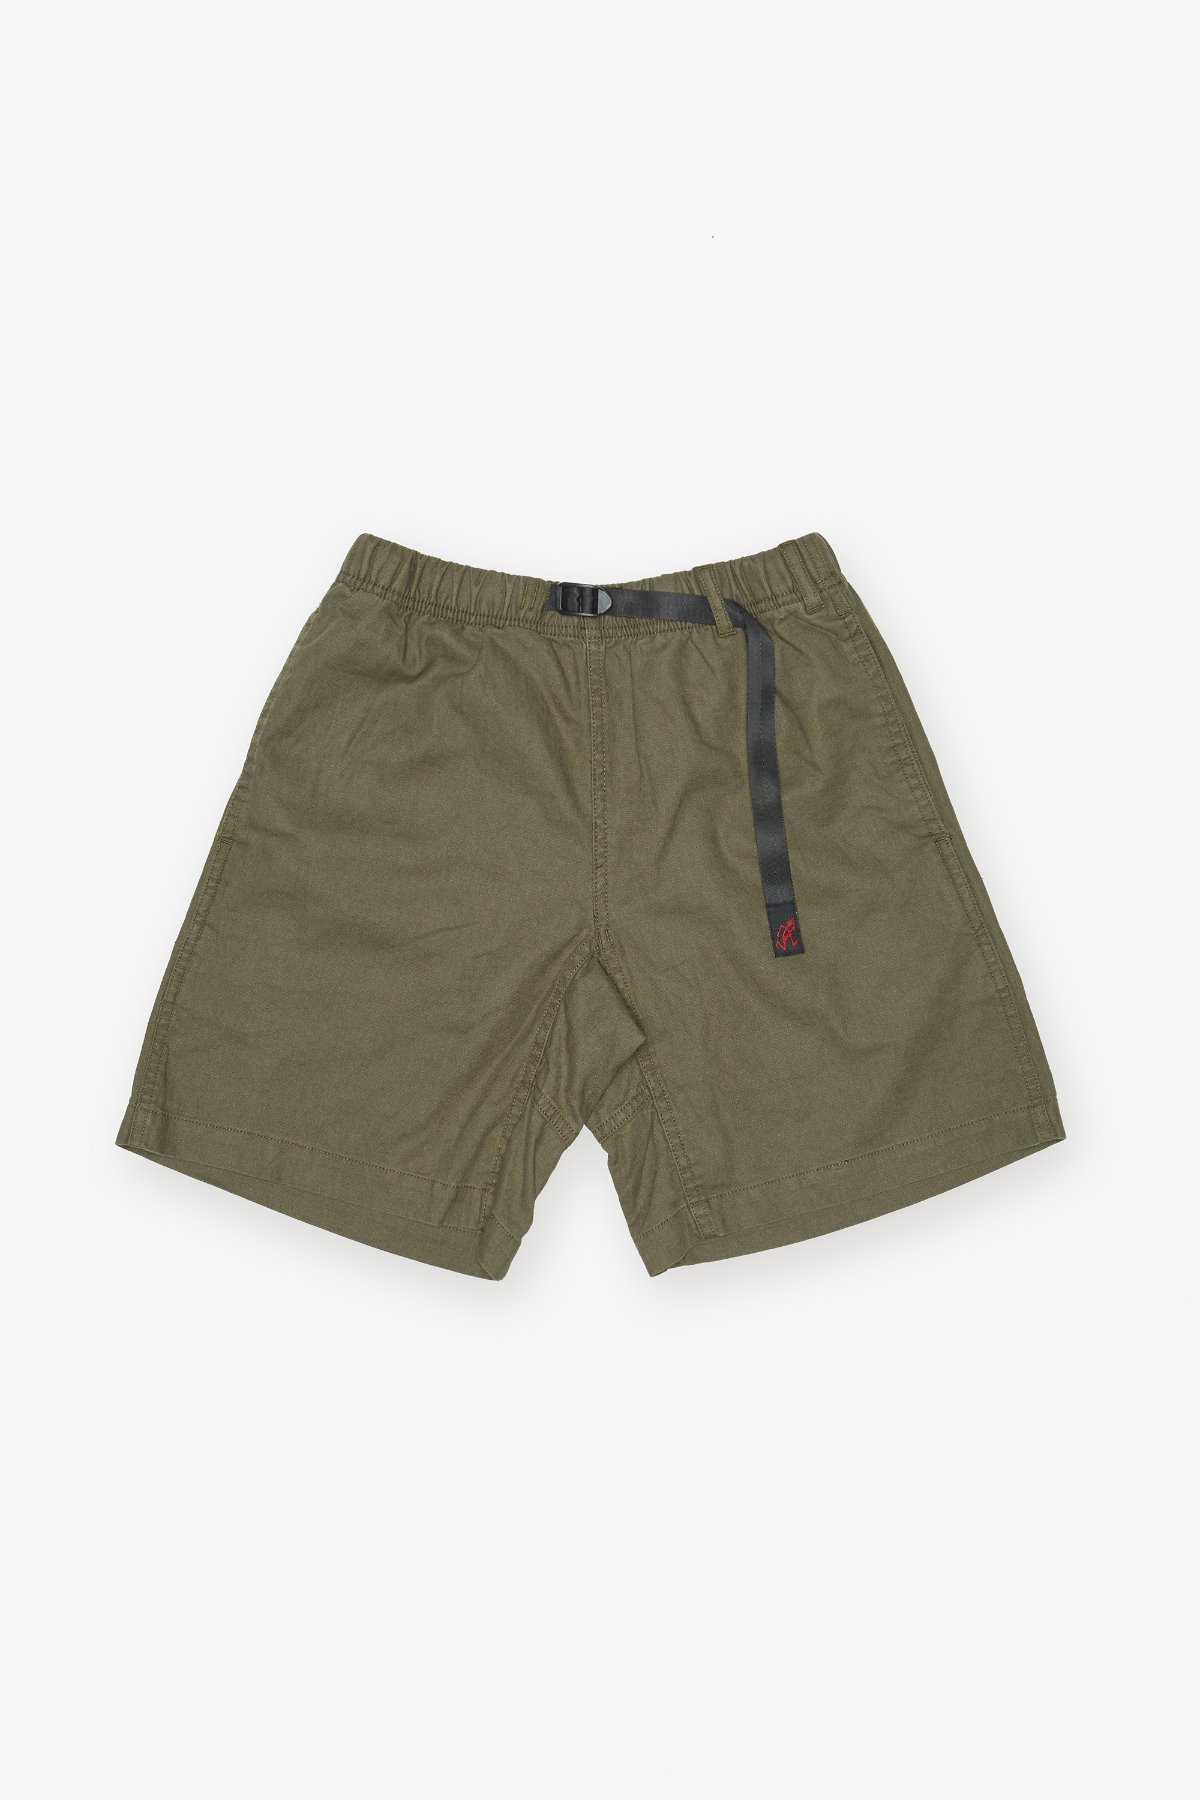 LINEN COTTON WS G-SHORTS OLIVE